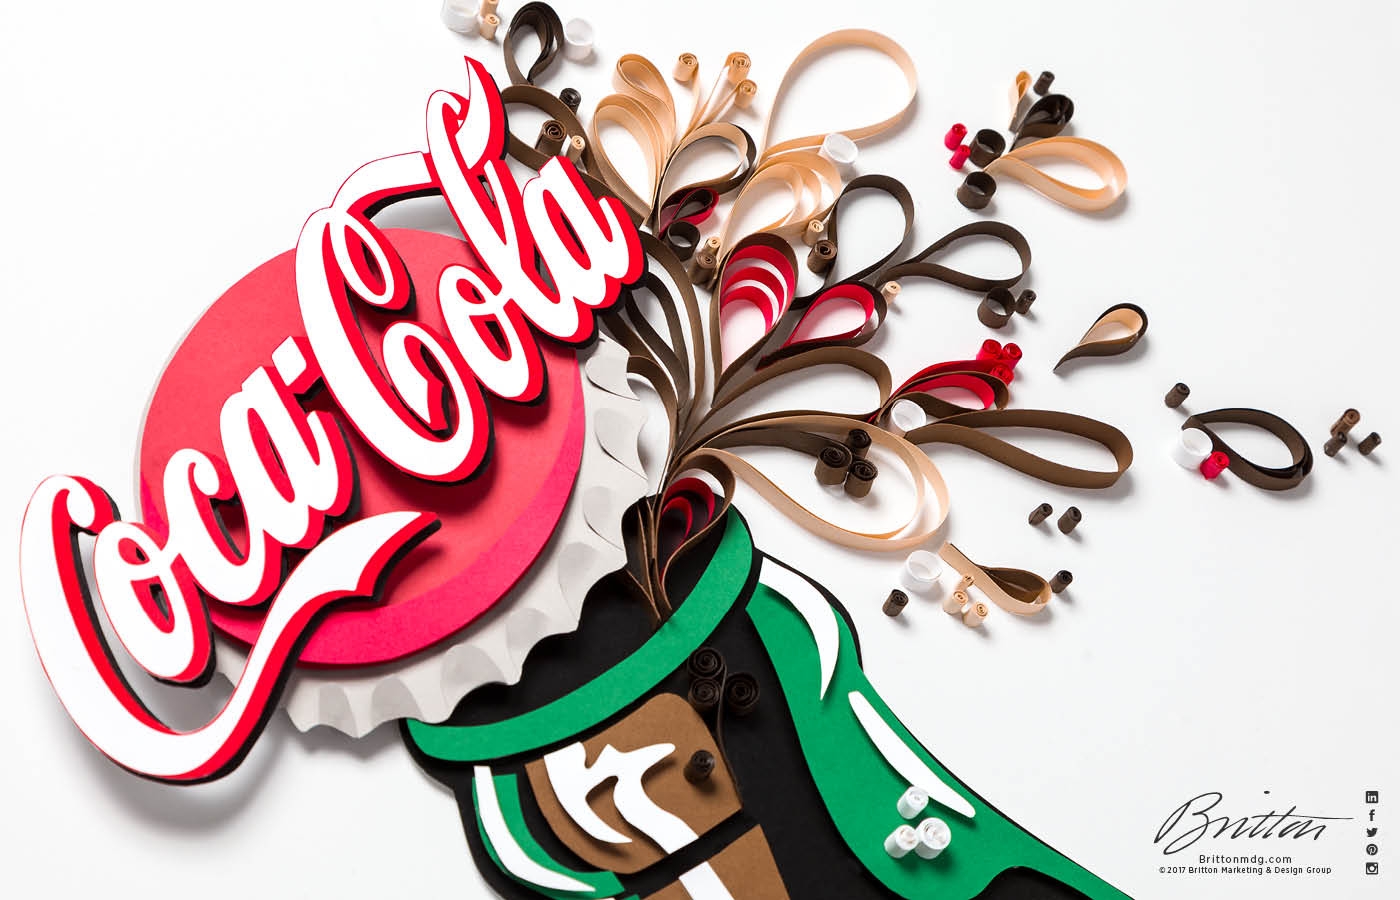 Coca Cola blog image